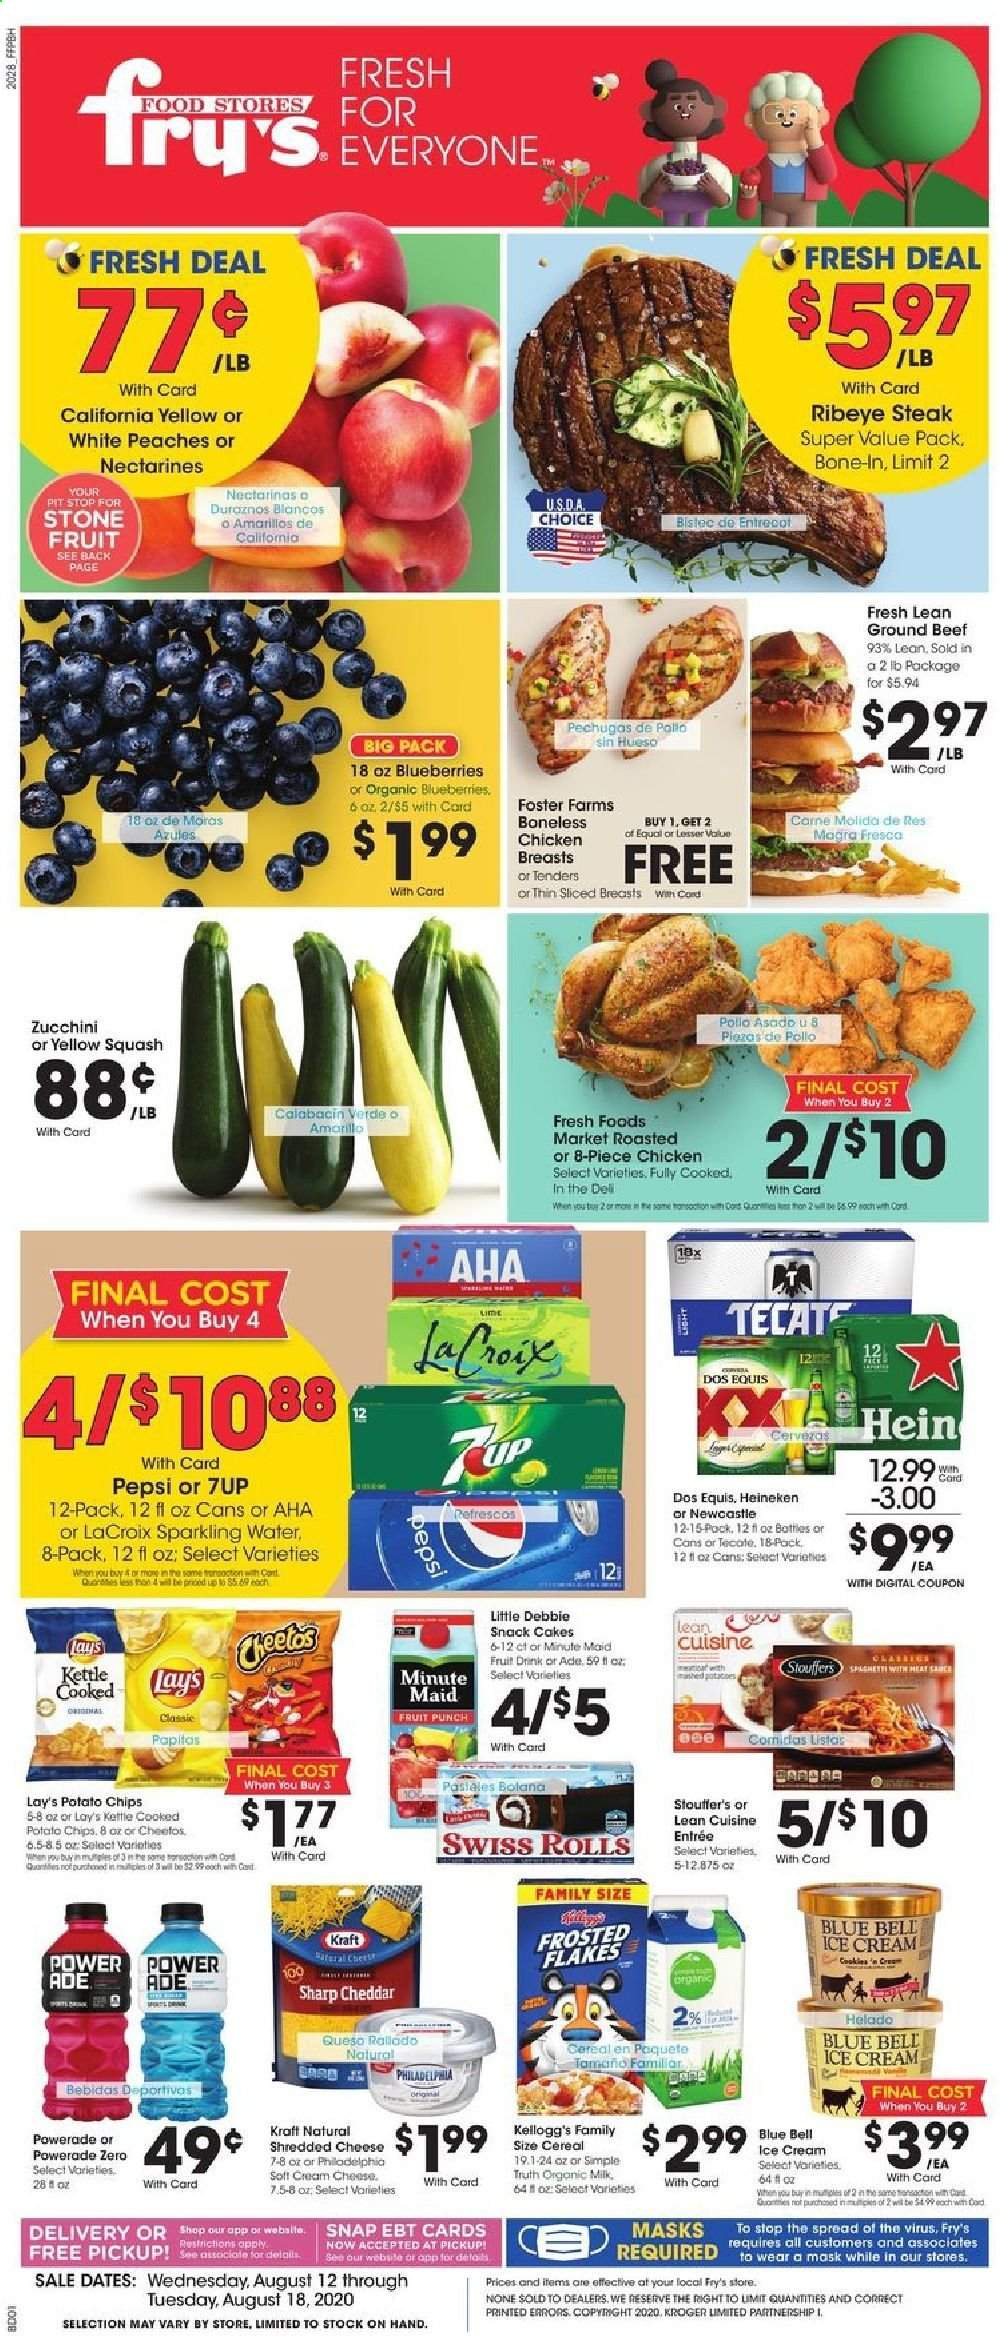 Fry's Flyer - 08.12.2020 - 08.18.2020 - Sales products - Dos Equis, squash, zucchini, blueberries, nectarines, rolls, cake, cream cheese, shredded cheese, Philadelphia, cheddar, cheese, organic milk, ice cream, potato chips, Cheetos, chips, snack, Lay's, cereals, spaghetti, Powerade, Pepsi, fruit drink, sparkling water, water, punch, chicken, chicken breast, beef meat, steak, ground beef, Sharp, kettle, mask. Page 1.